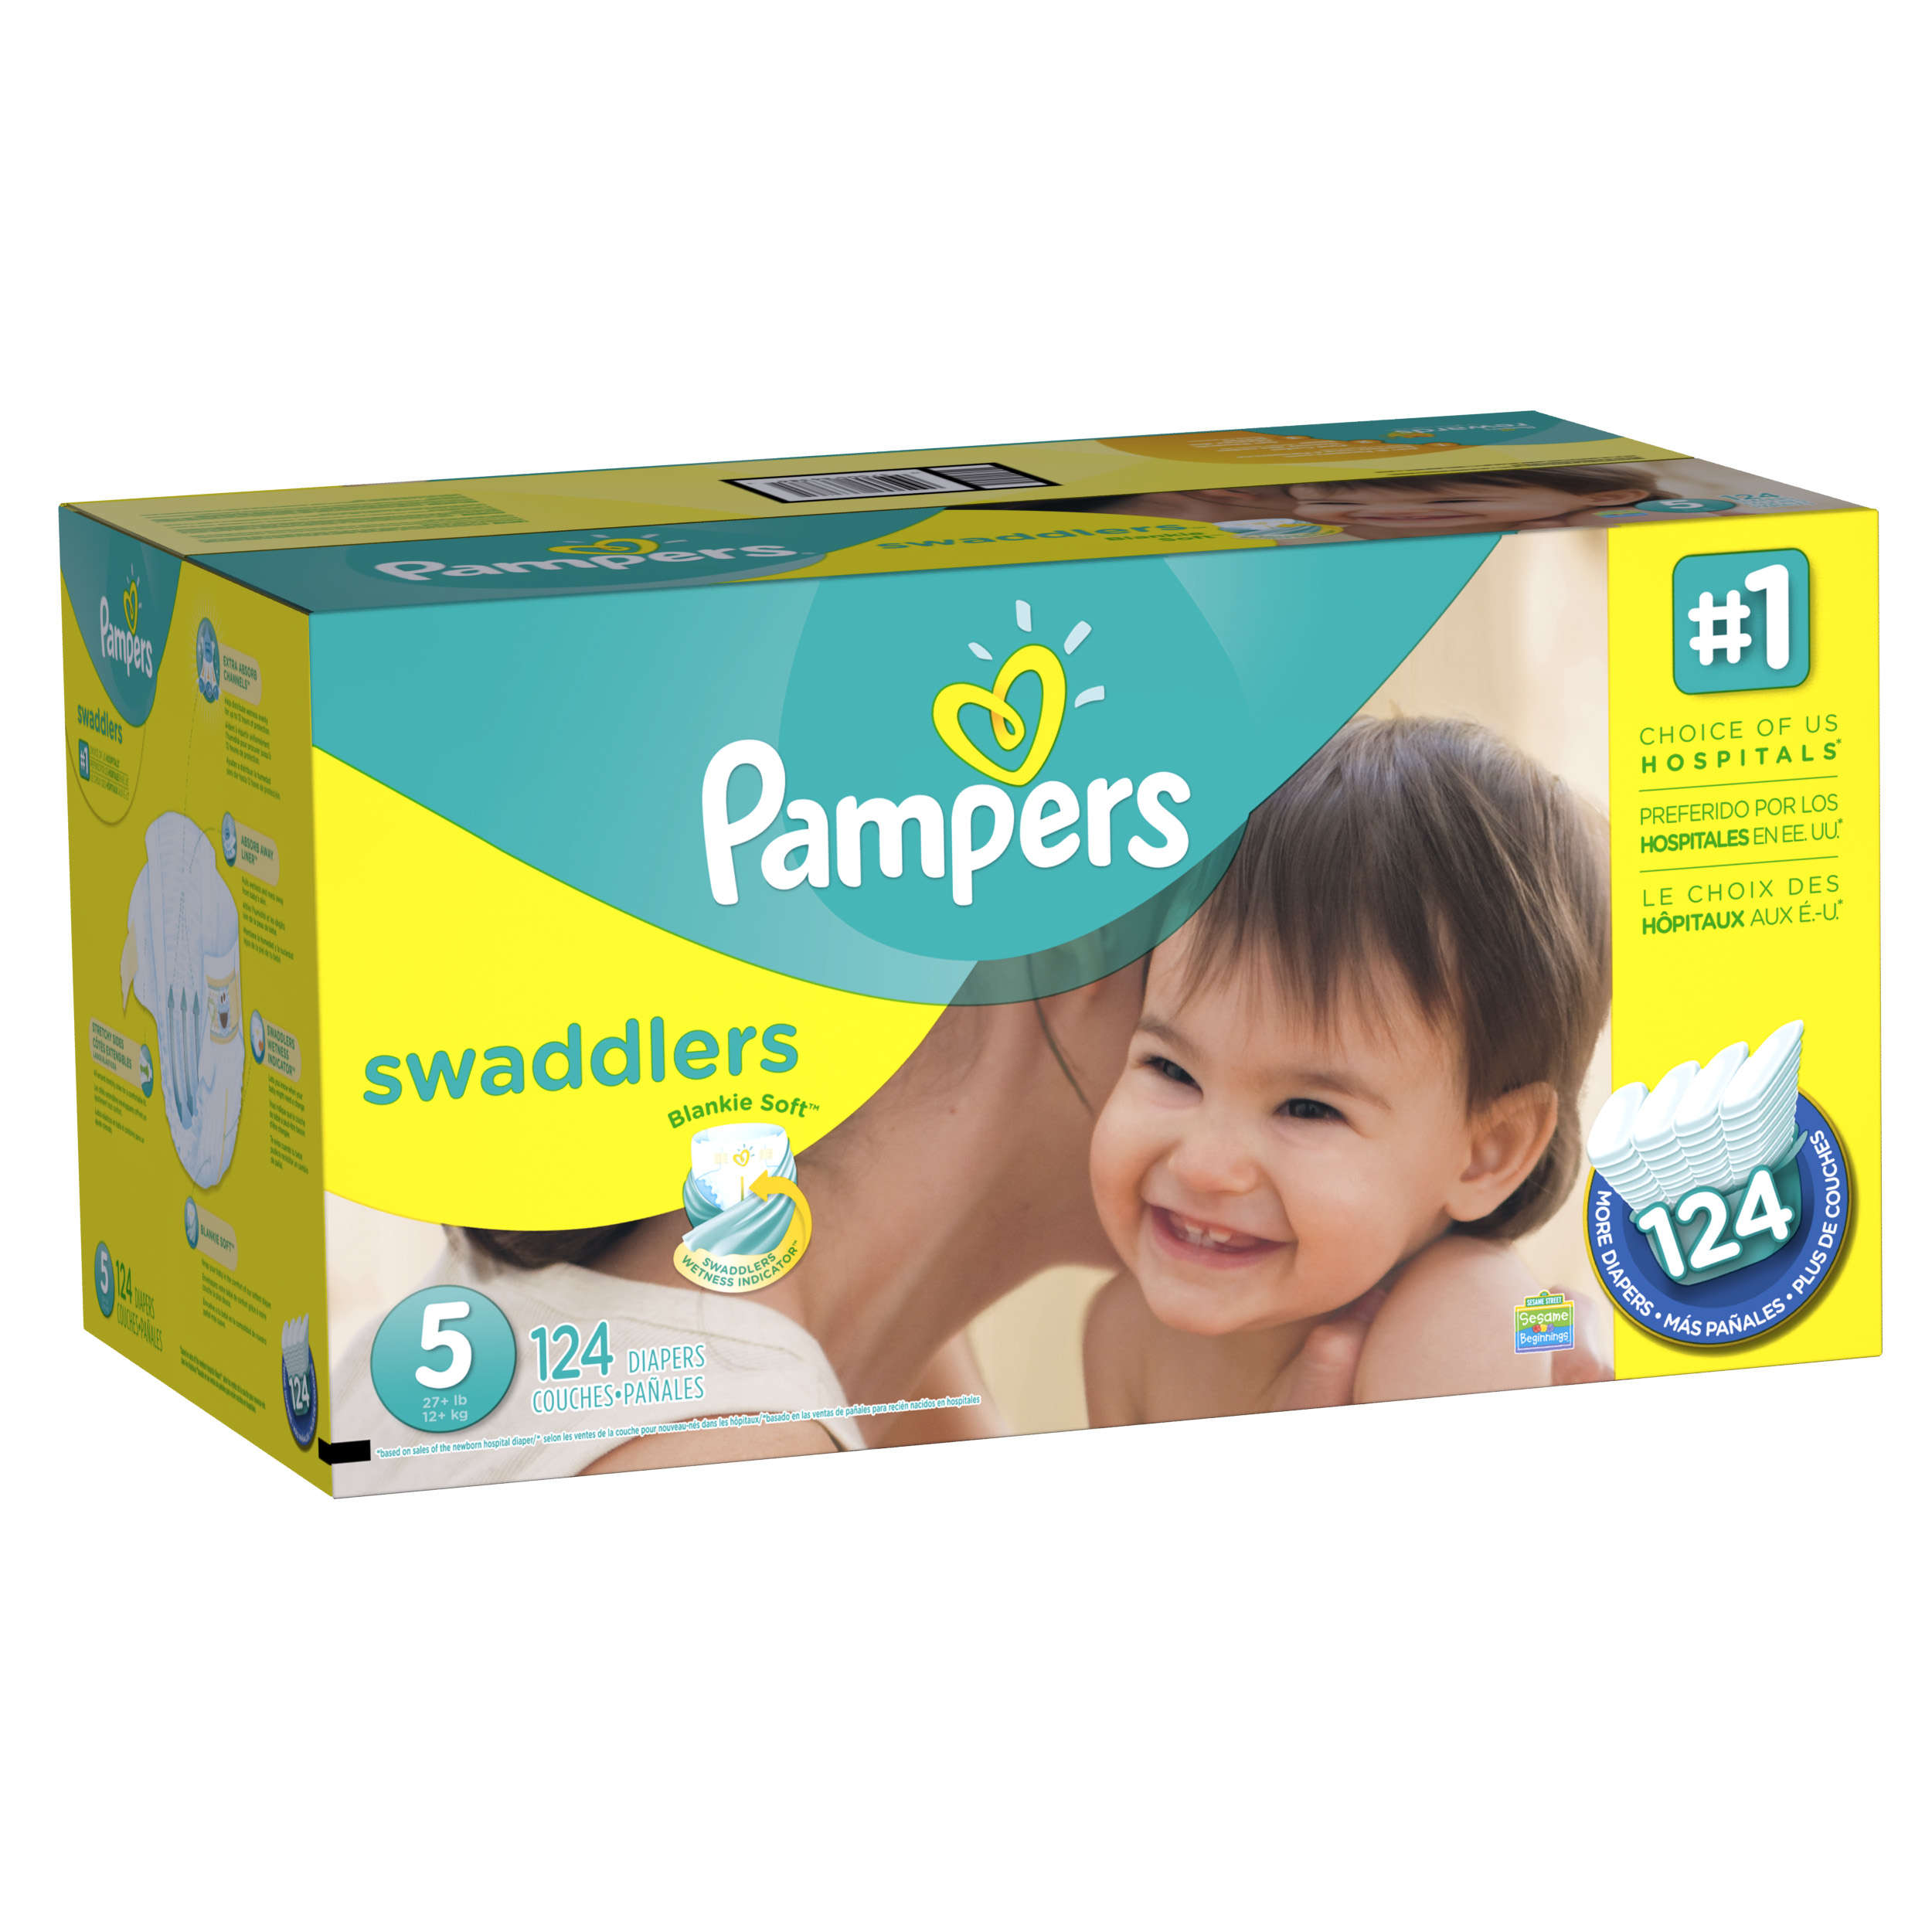 Pampers Swaddlers Diapers, Size 5, 124 Diapers